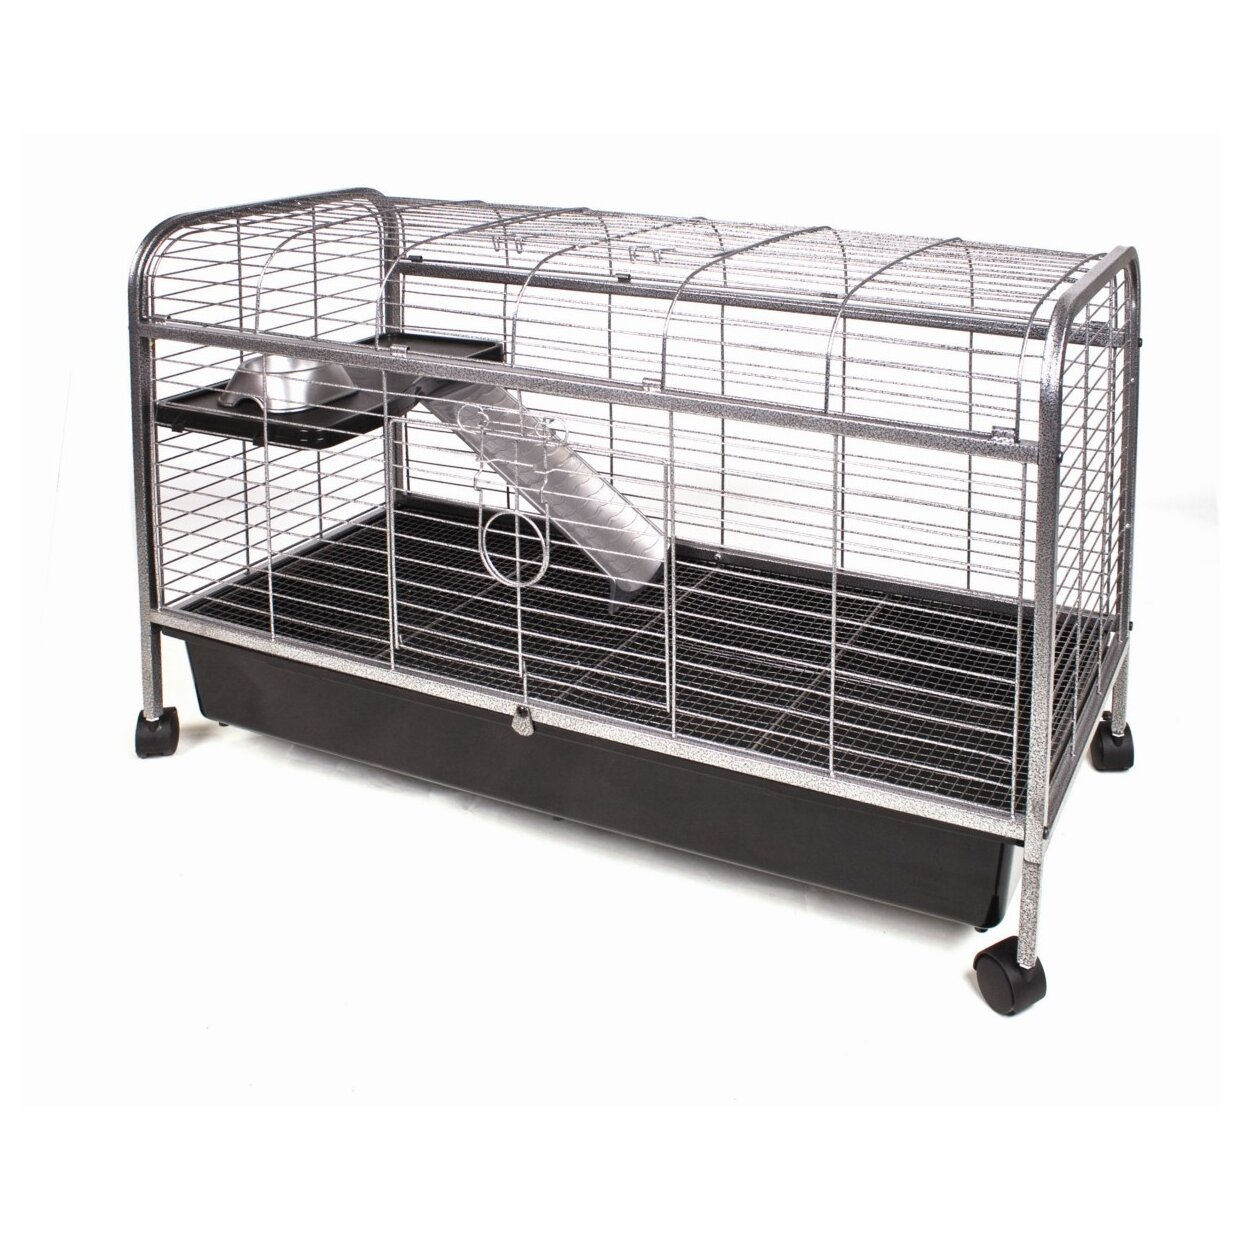 Living Room Series Rabbit Cage With Pull Out Pan